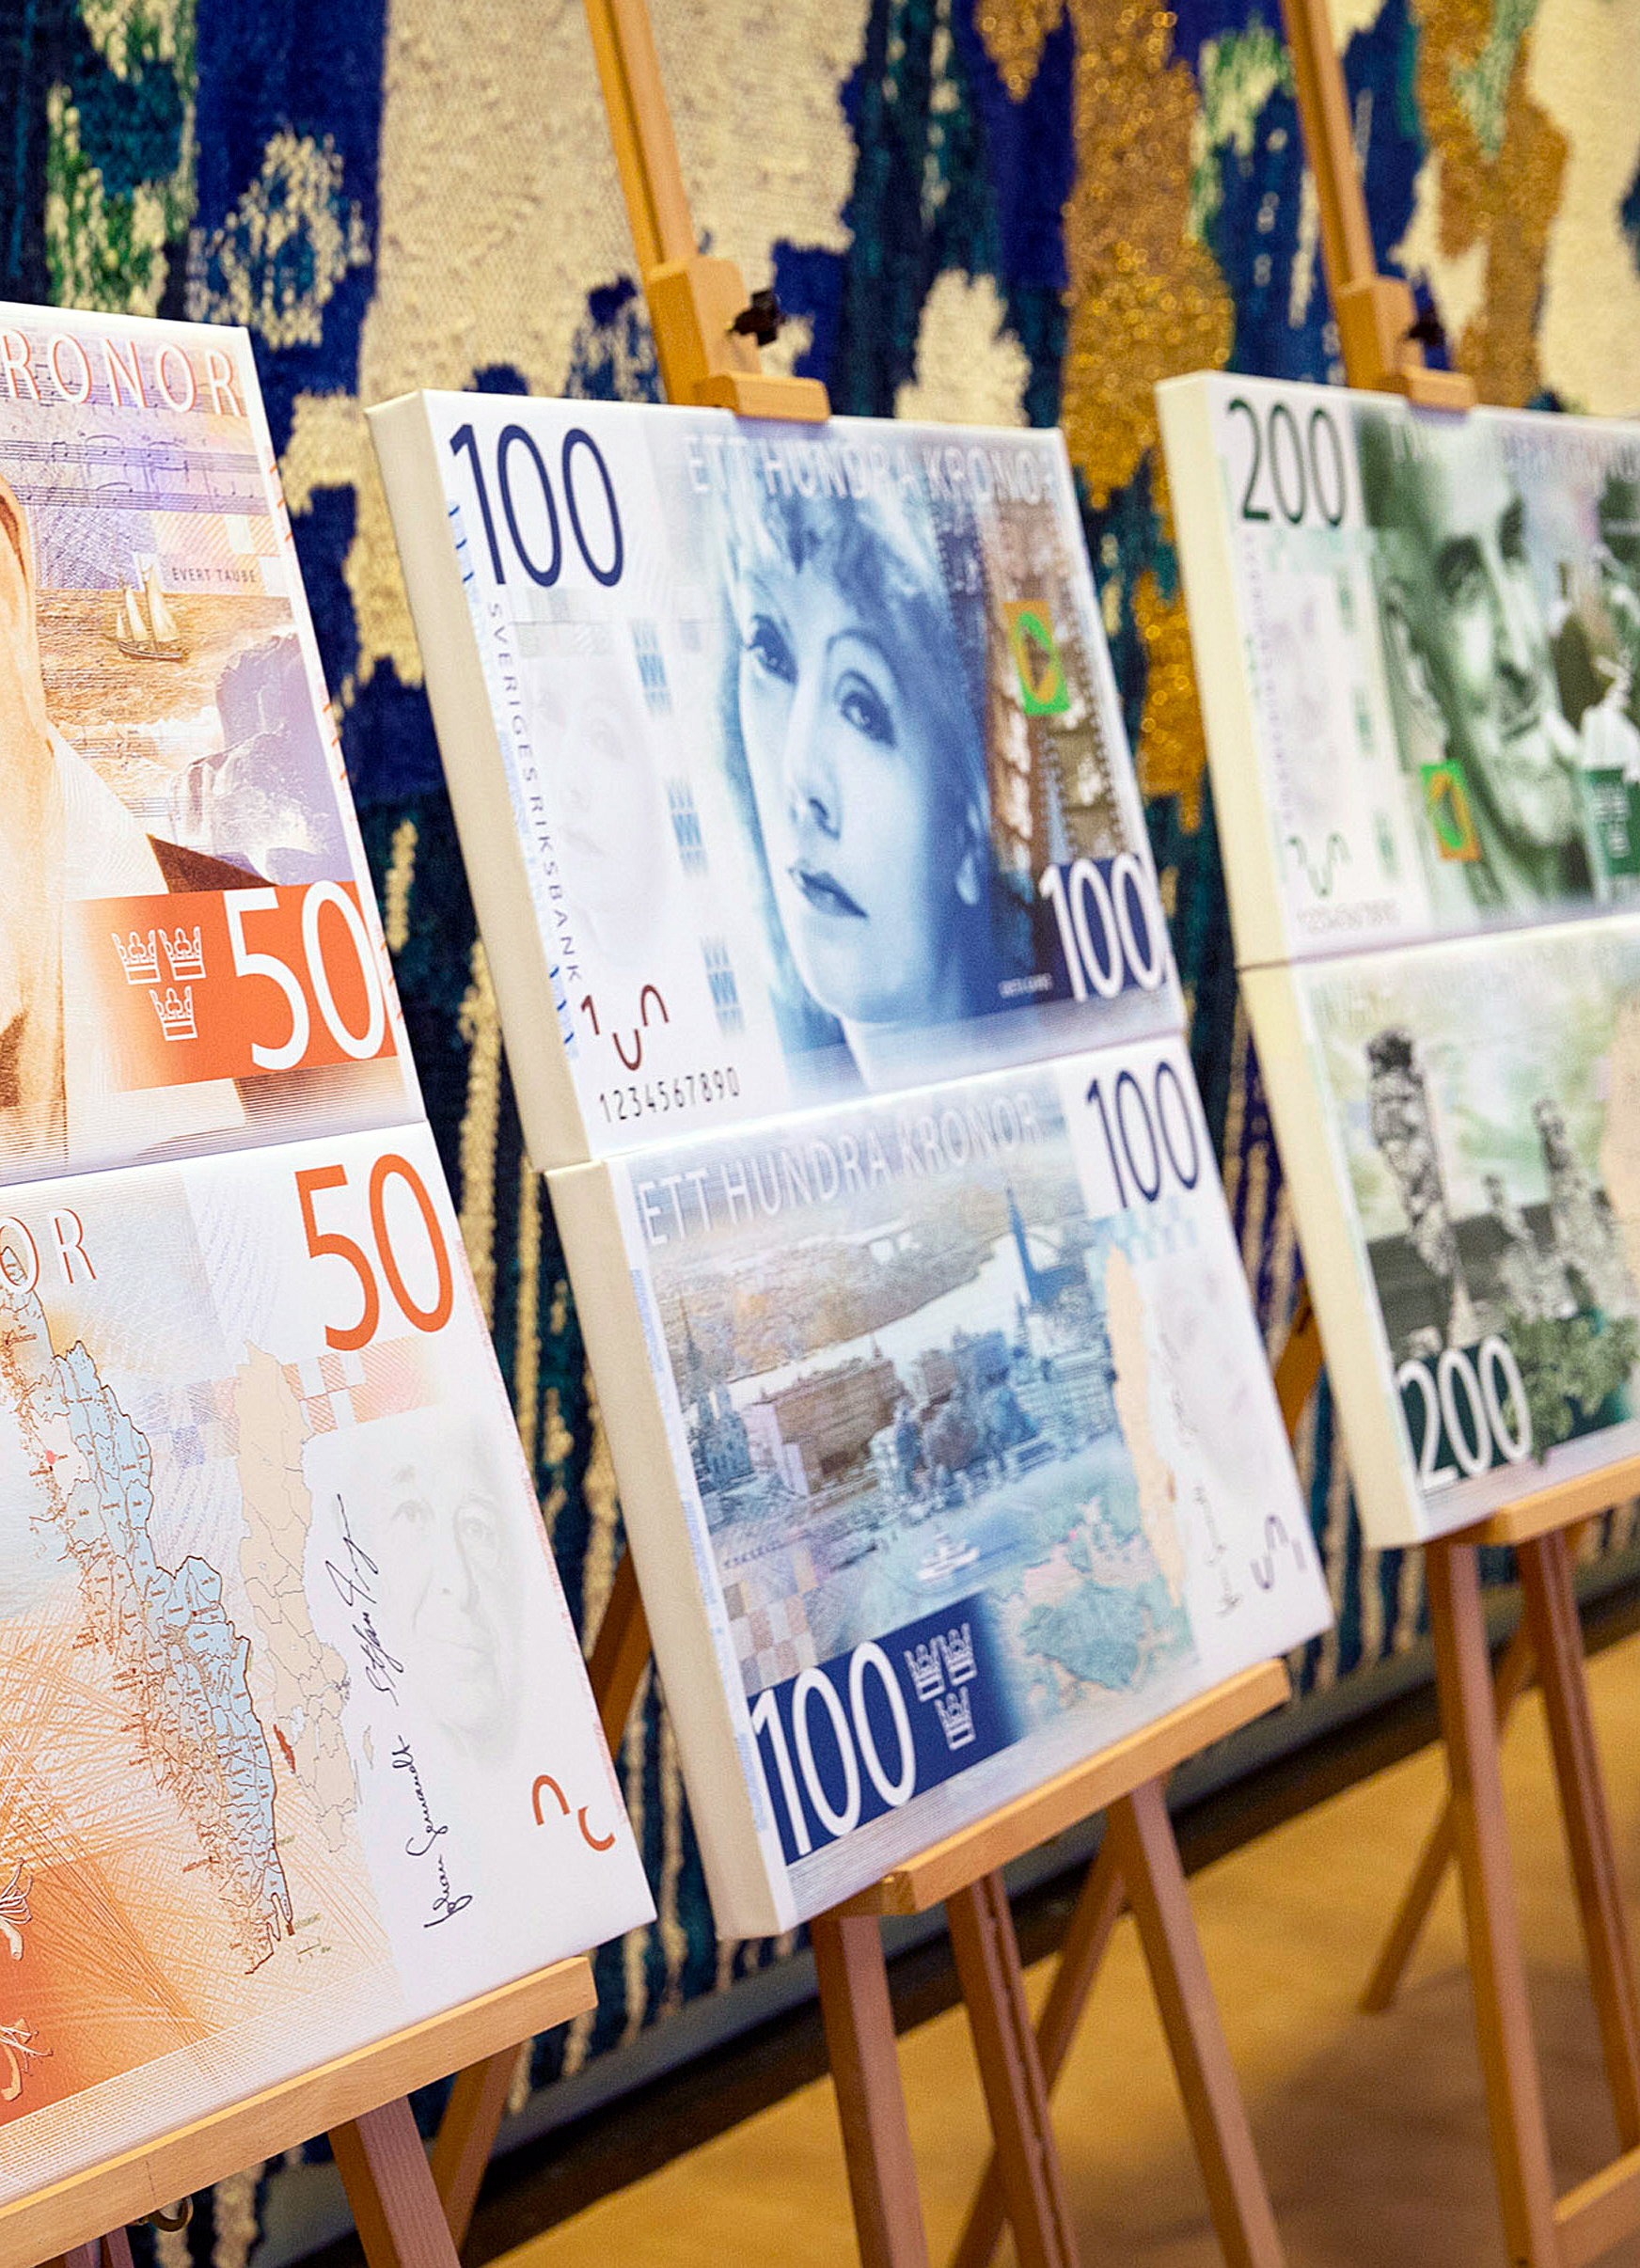 Artwork showing the designs of new folding Swedish krona, or kronor, currency notes due to be issued in 2014 stands on display at the Riksbank in Stockholm, Sweden, on Tuesday, Jan. 22, 2013.